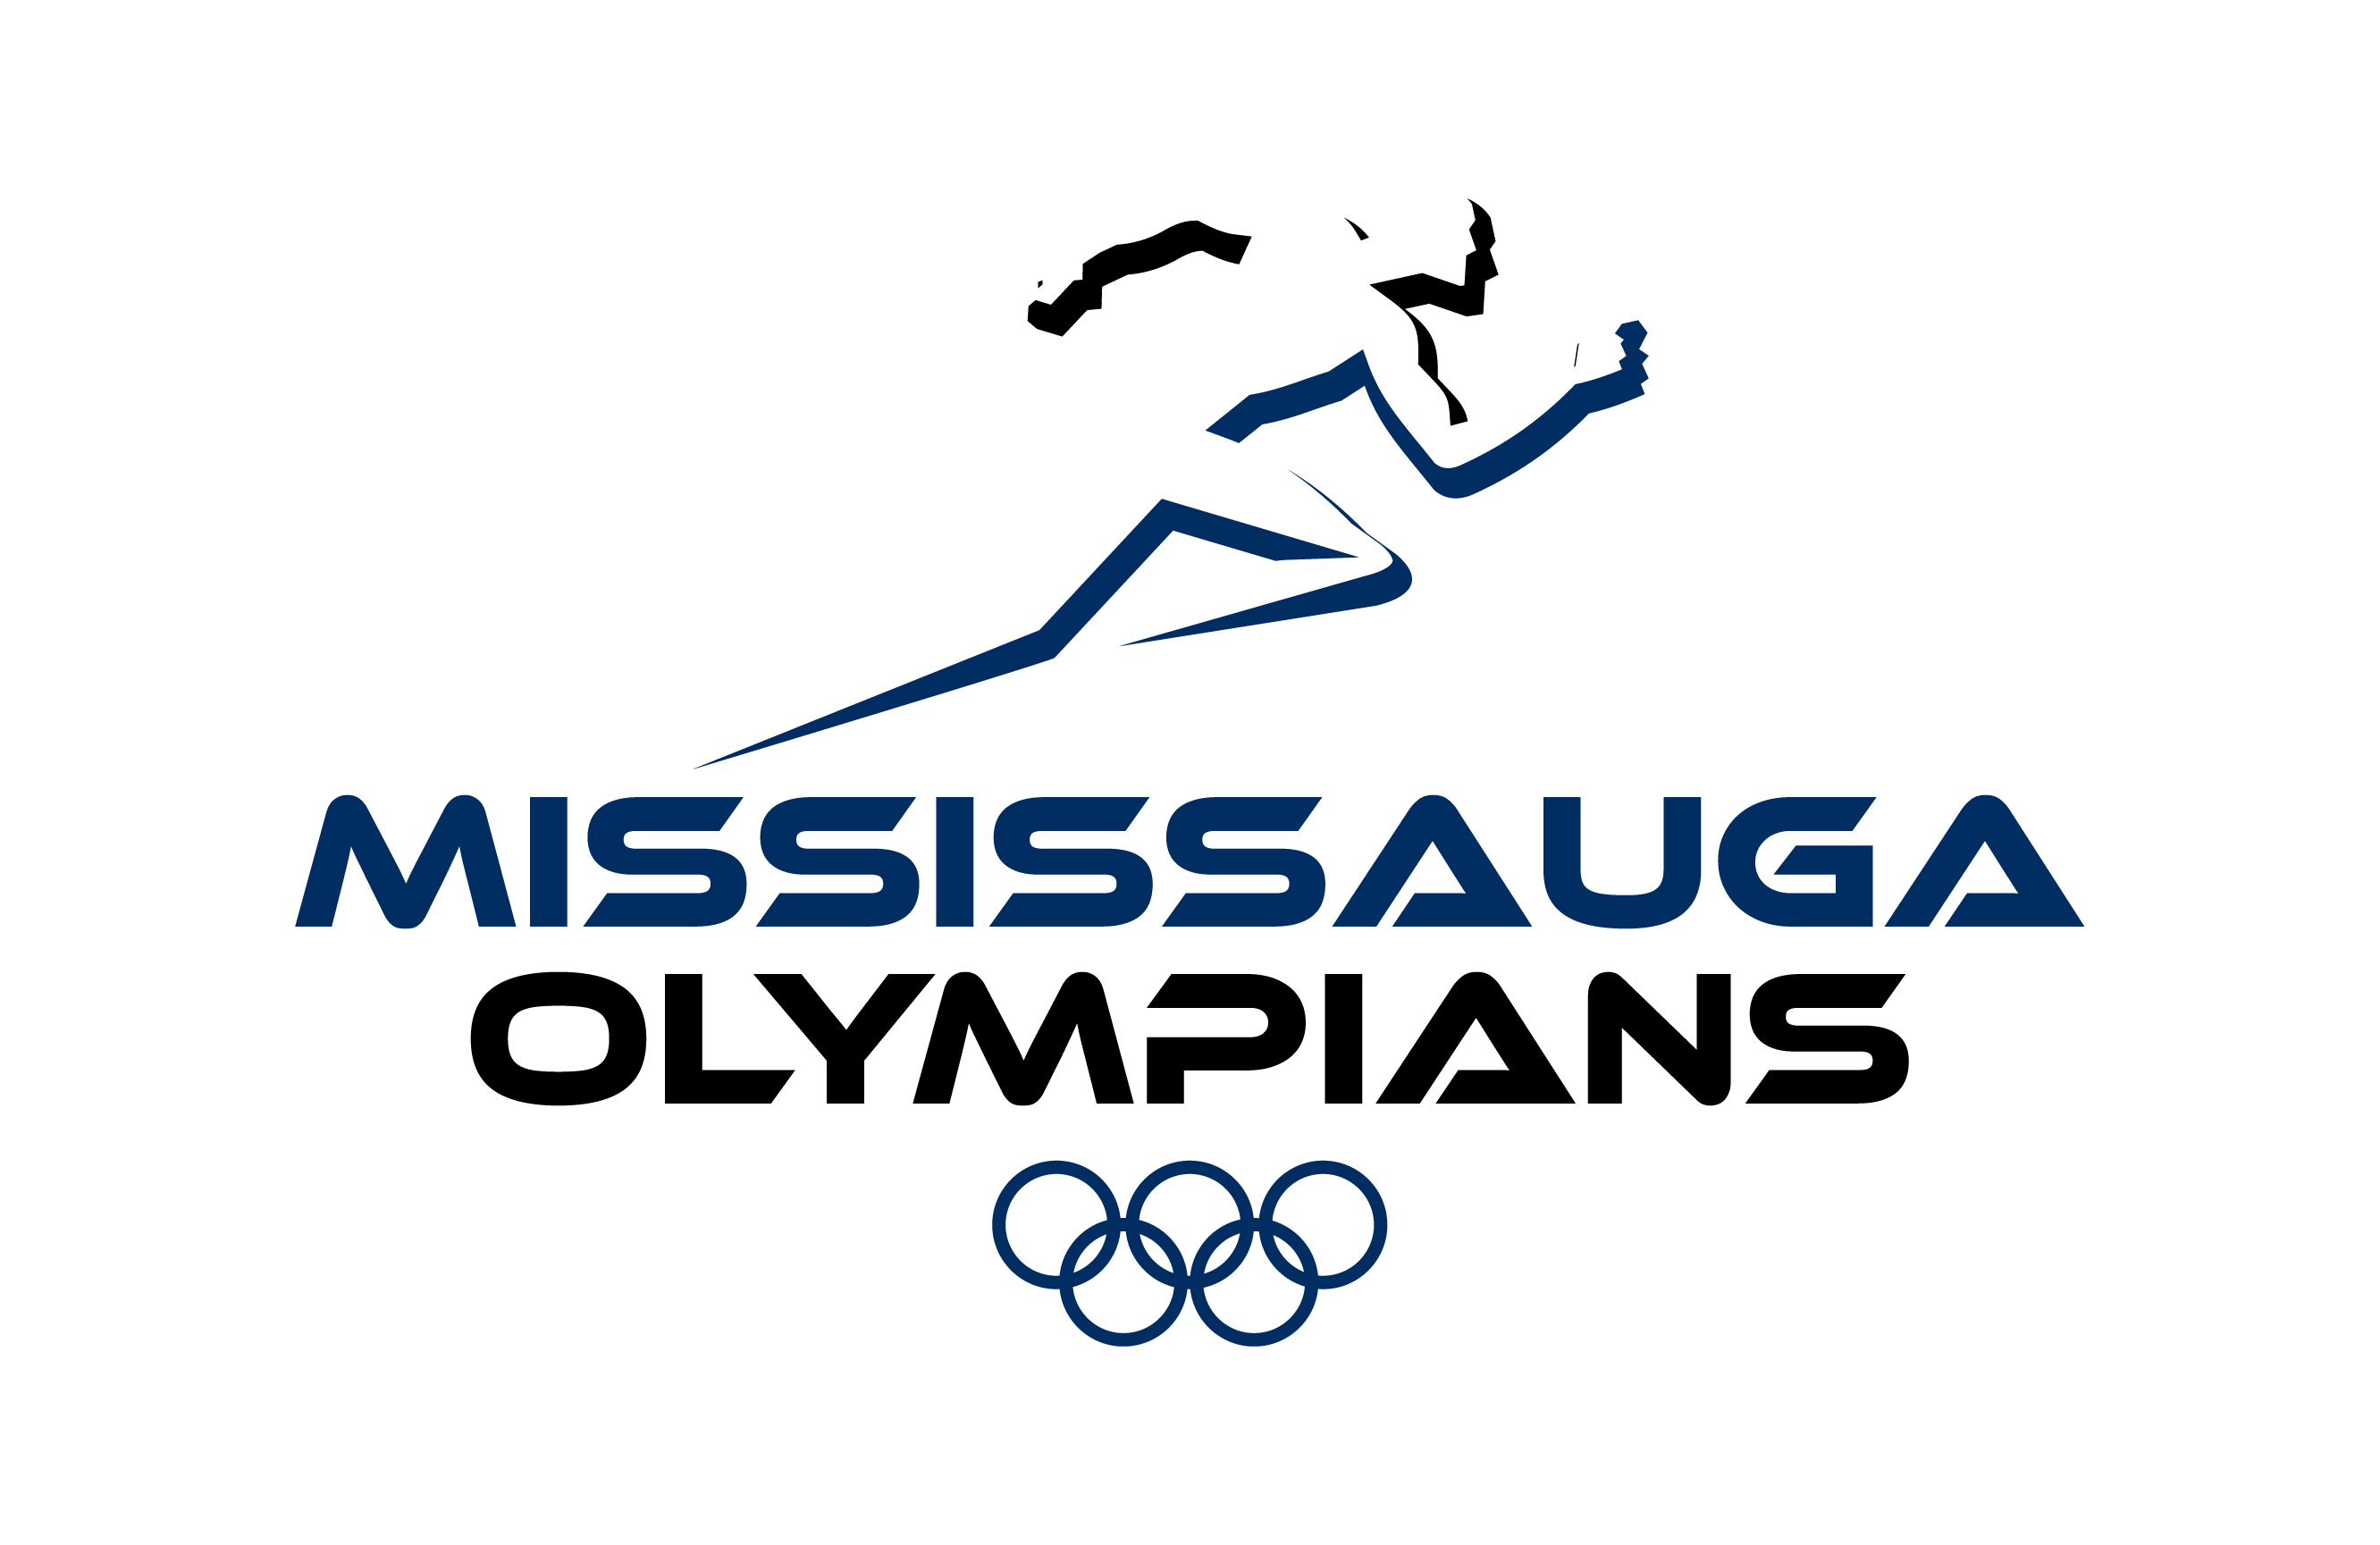 Mississauga Olympians